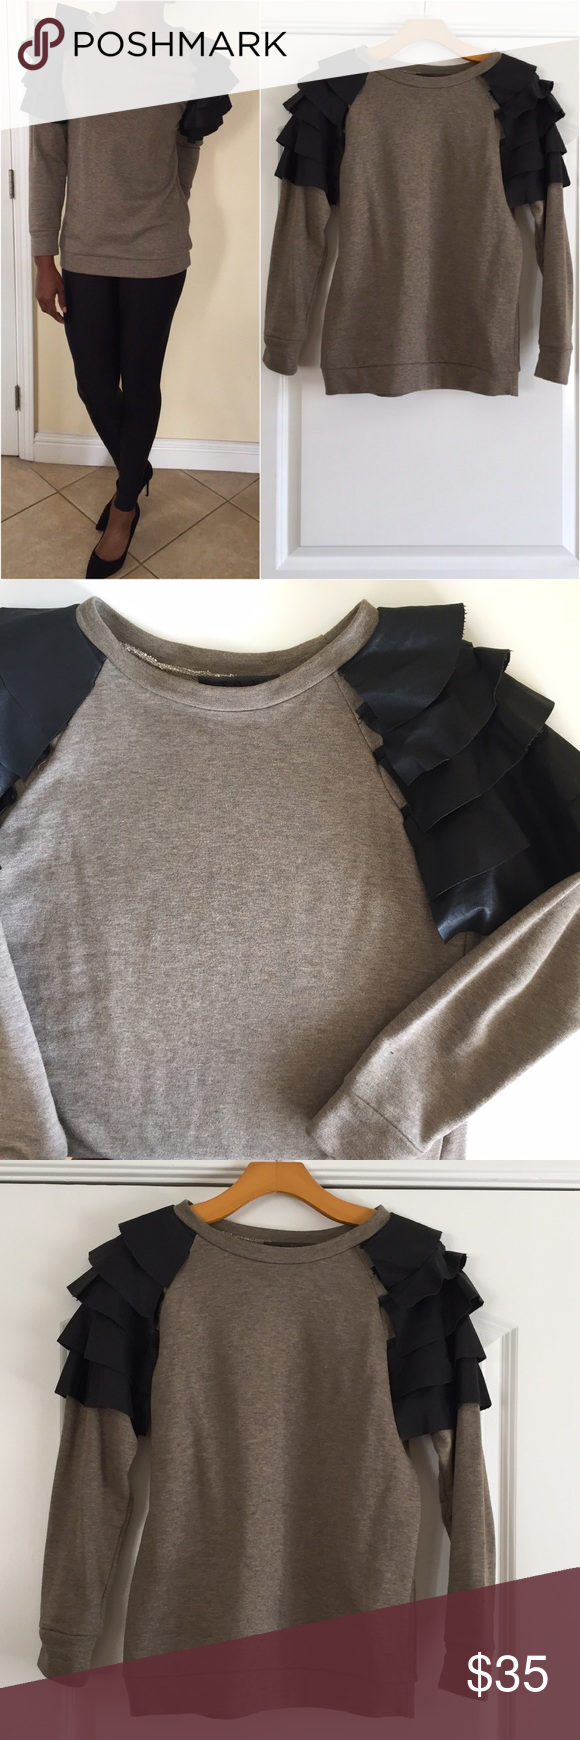 Leather Ruffle Sleeve Pullover Long sleeve french terry sweat shirt. Olive color with black faux leather panels on shoulder. Worn twice. No rips, pilling or discoloration. In excellent condition. Tov Holy G Inc Tops Sweatshirts & Hoodies